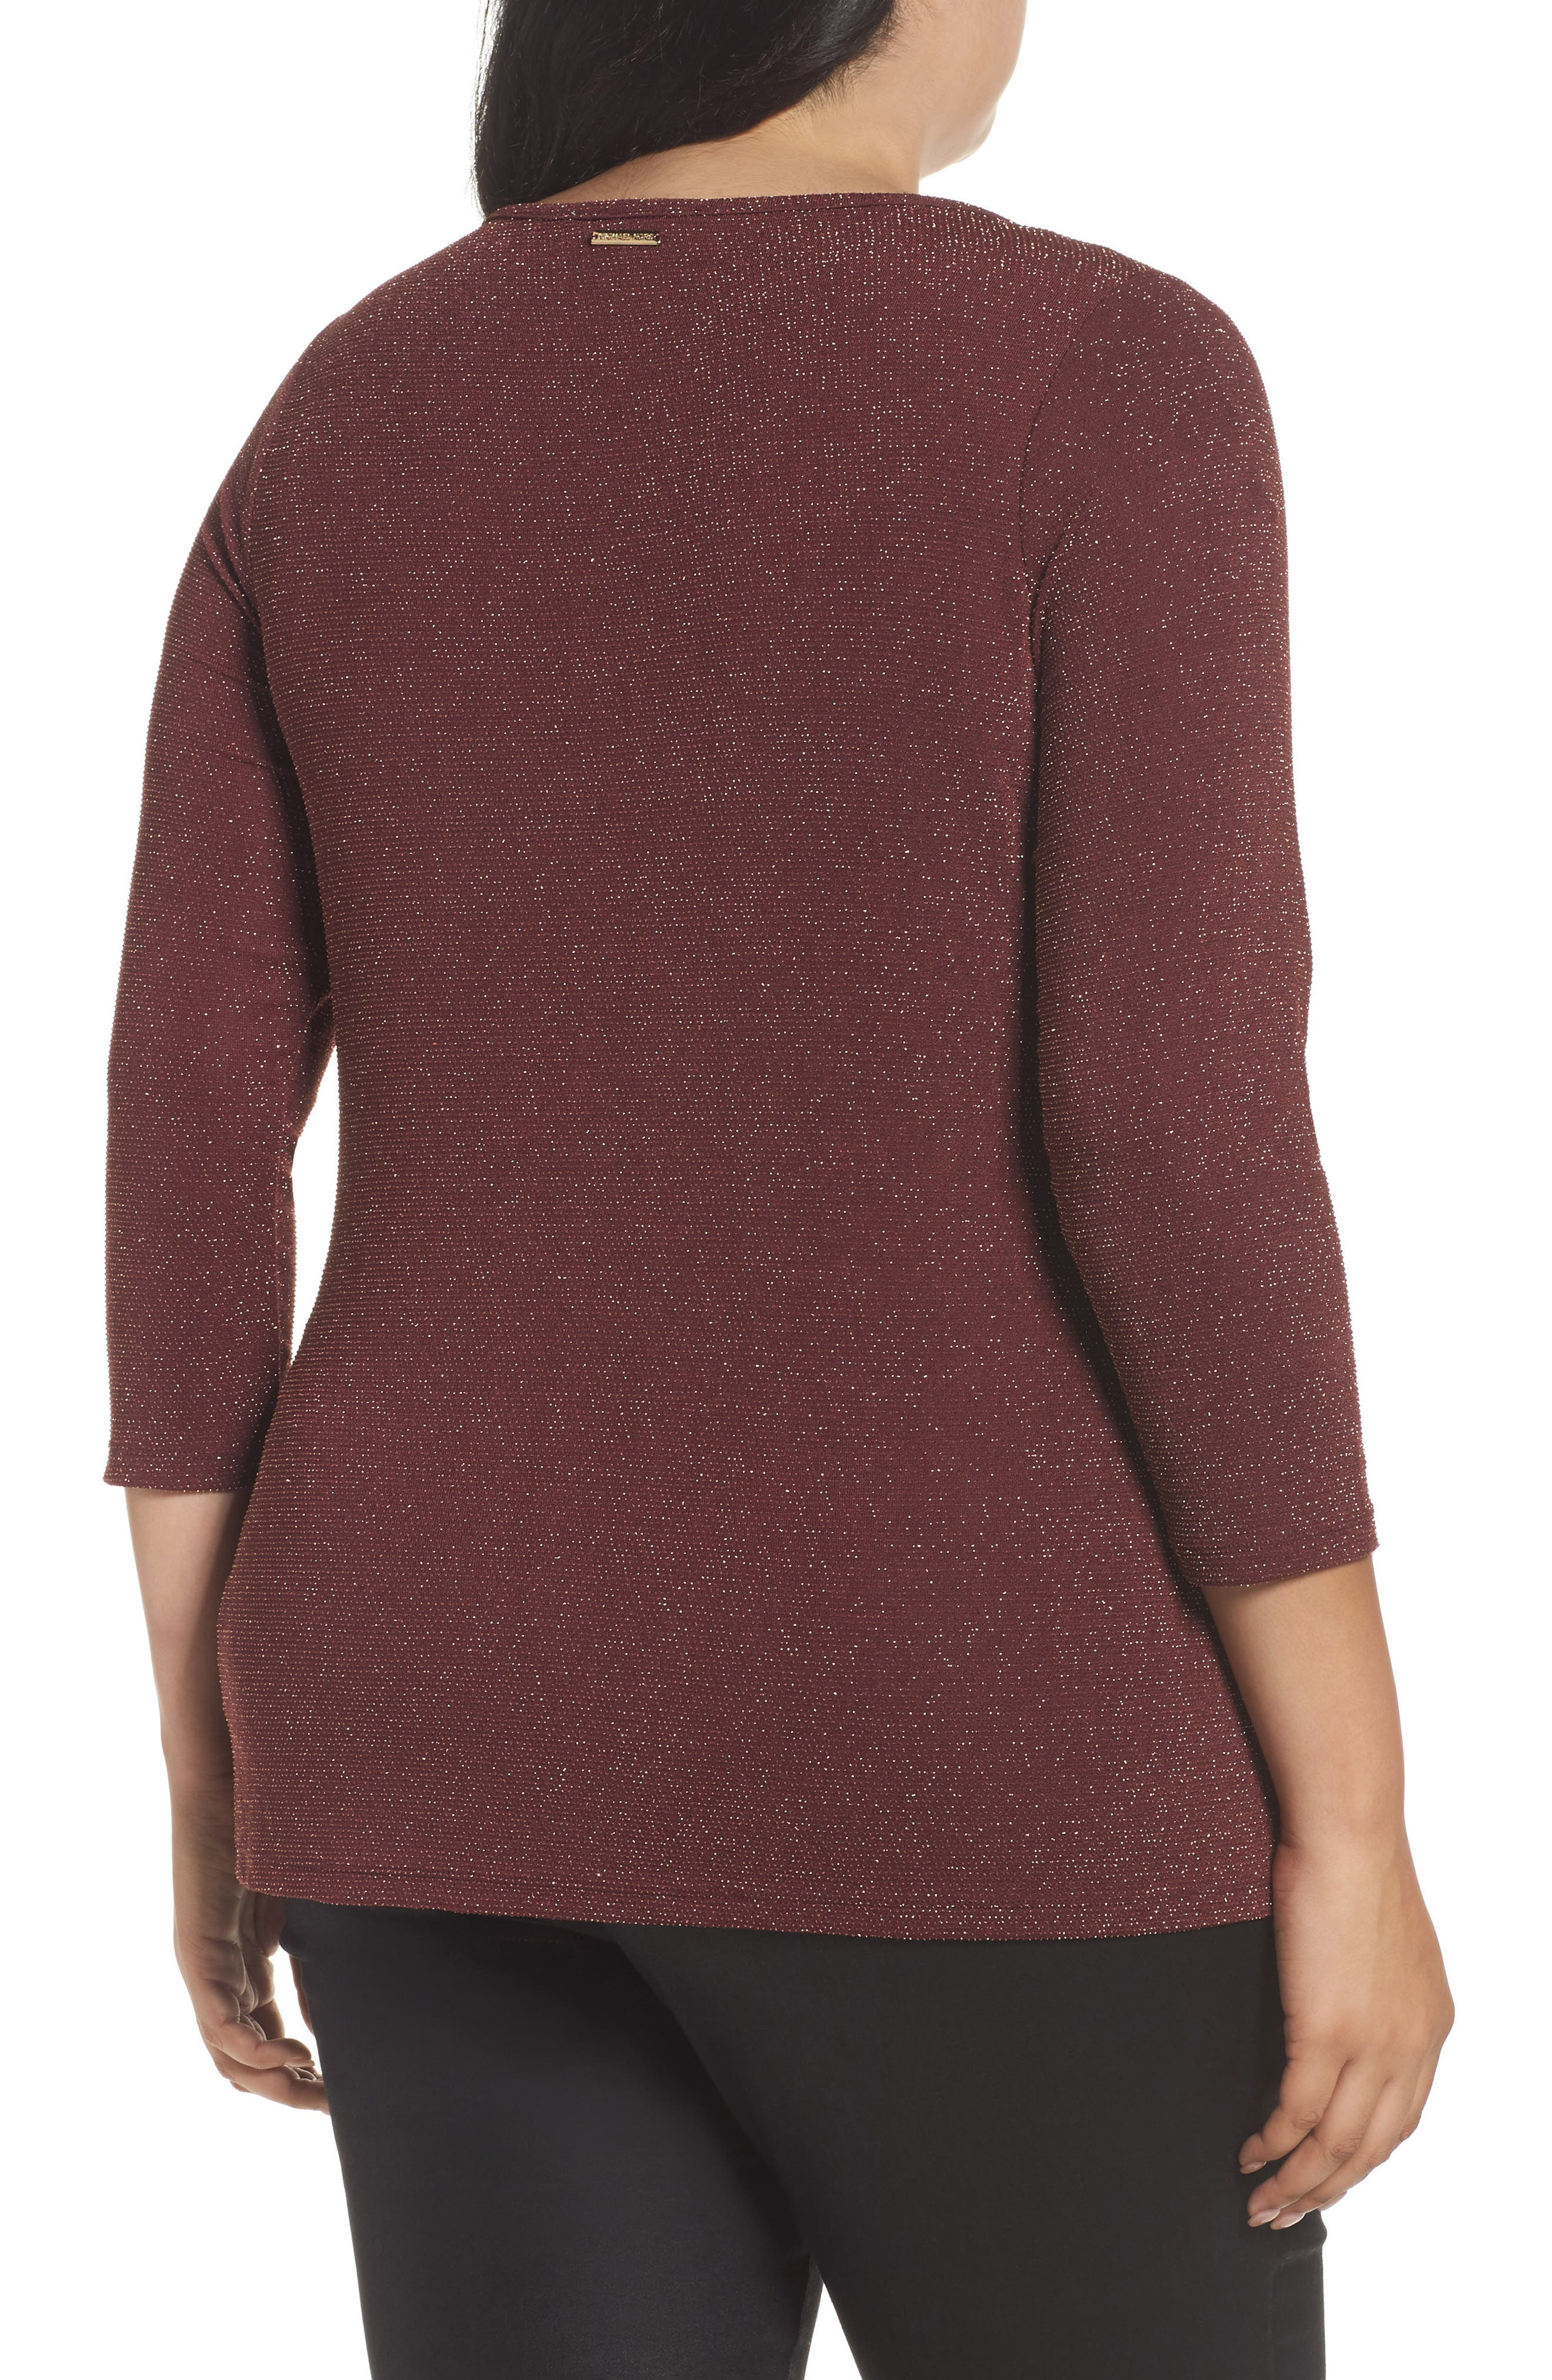 Metallic Top,                             Alternate thumbnail 2, color,                             Merlot